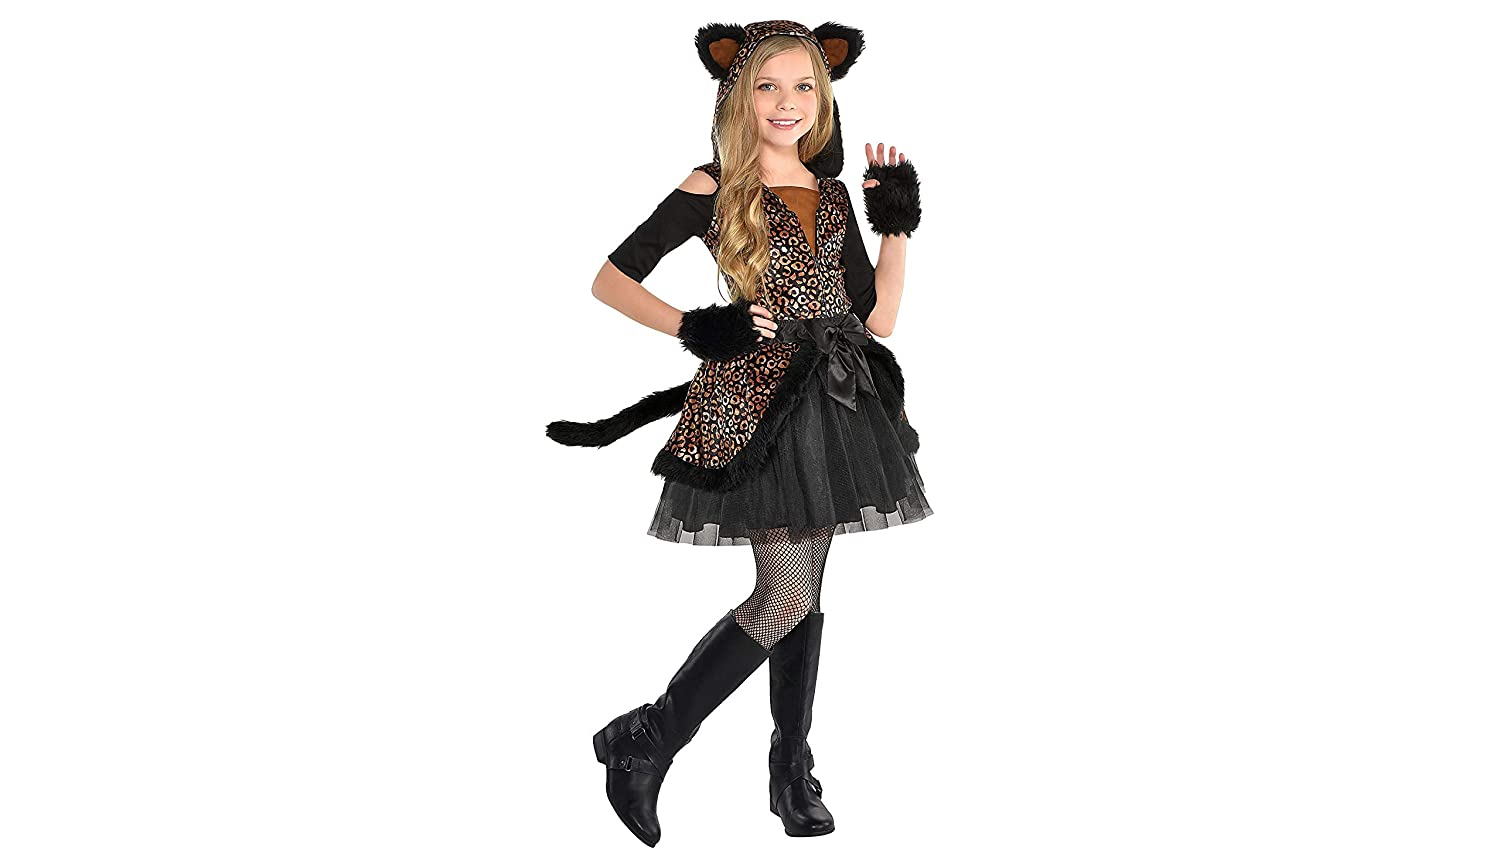 cc80c4b558ba Amazon.com: Leopard Dress Halloween Costume for Girls, Large, with Included  Accessories, by Amscan: Clothing